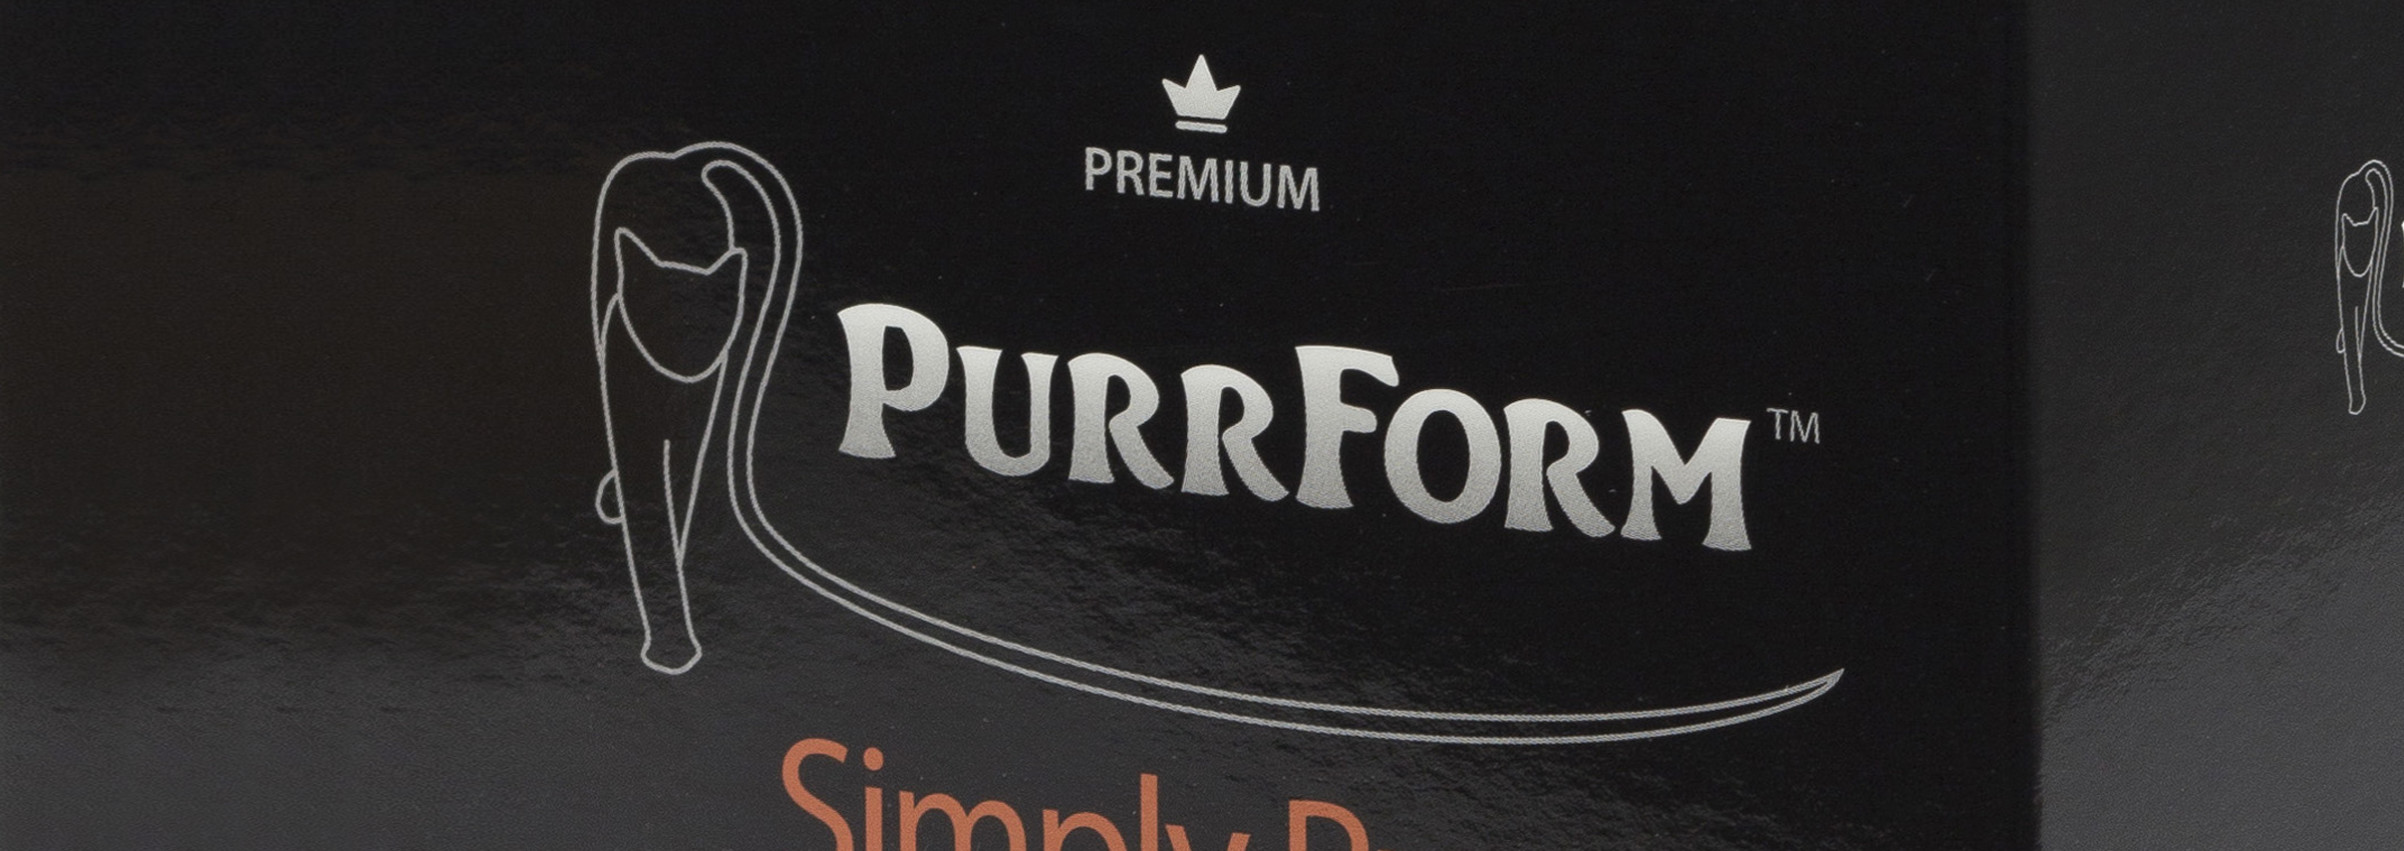 Purrform packaging close up